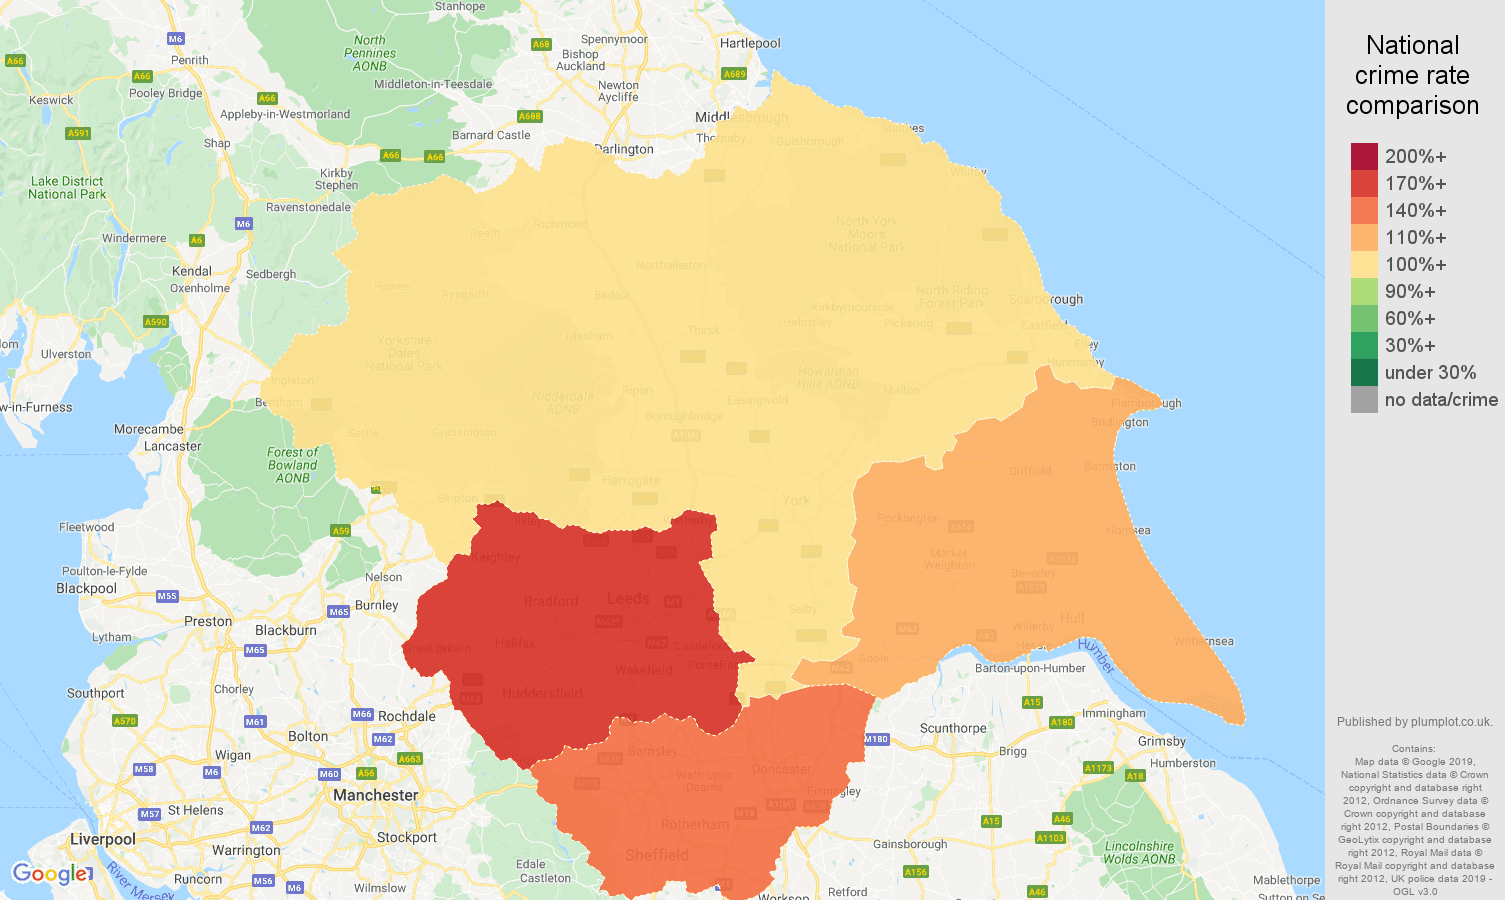 Yorkshire other crime rate comparison map